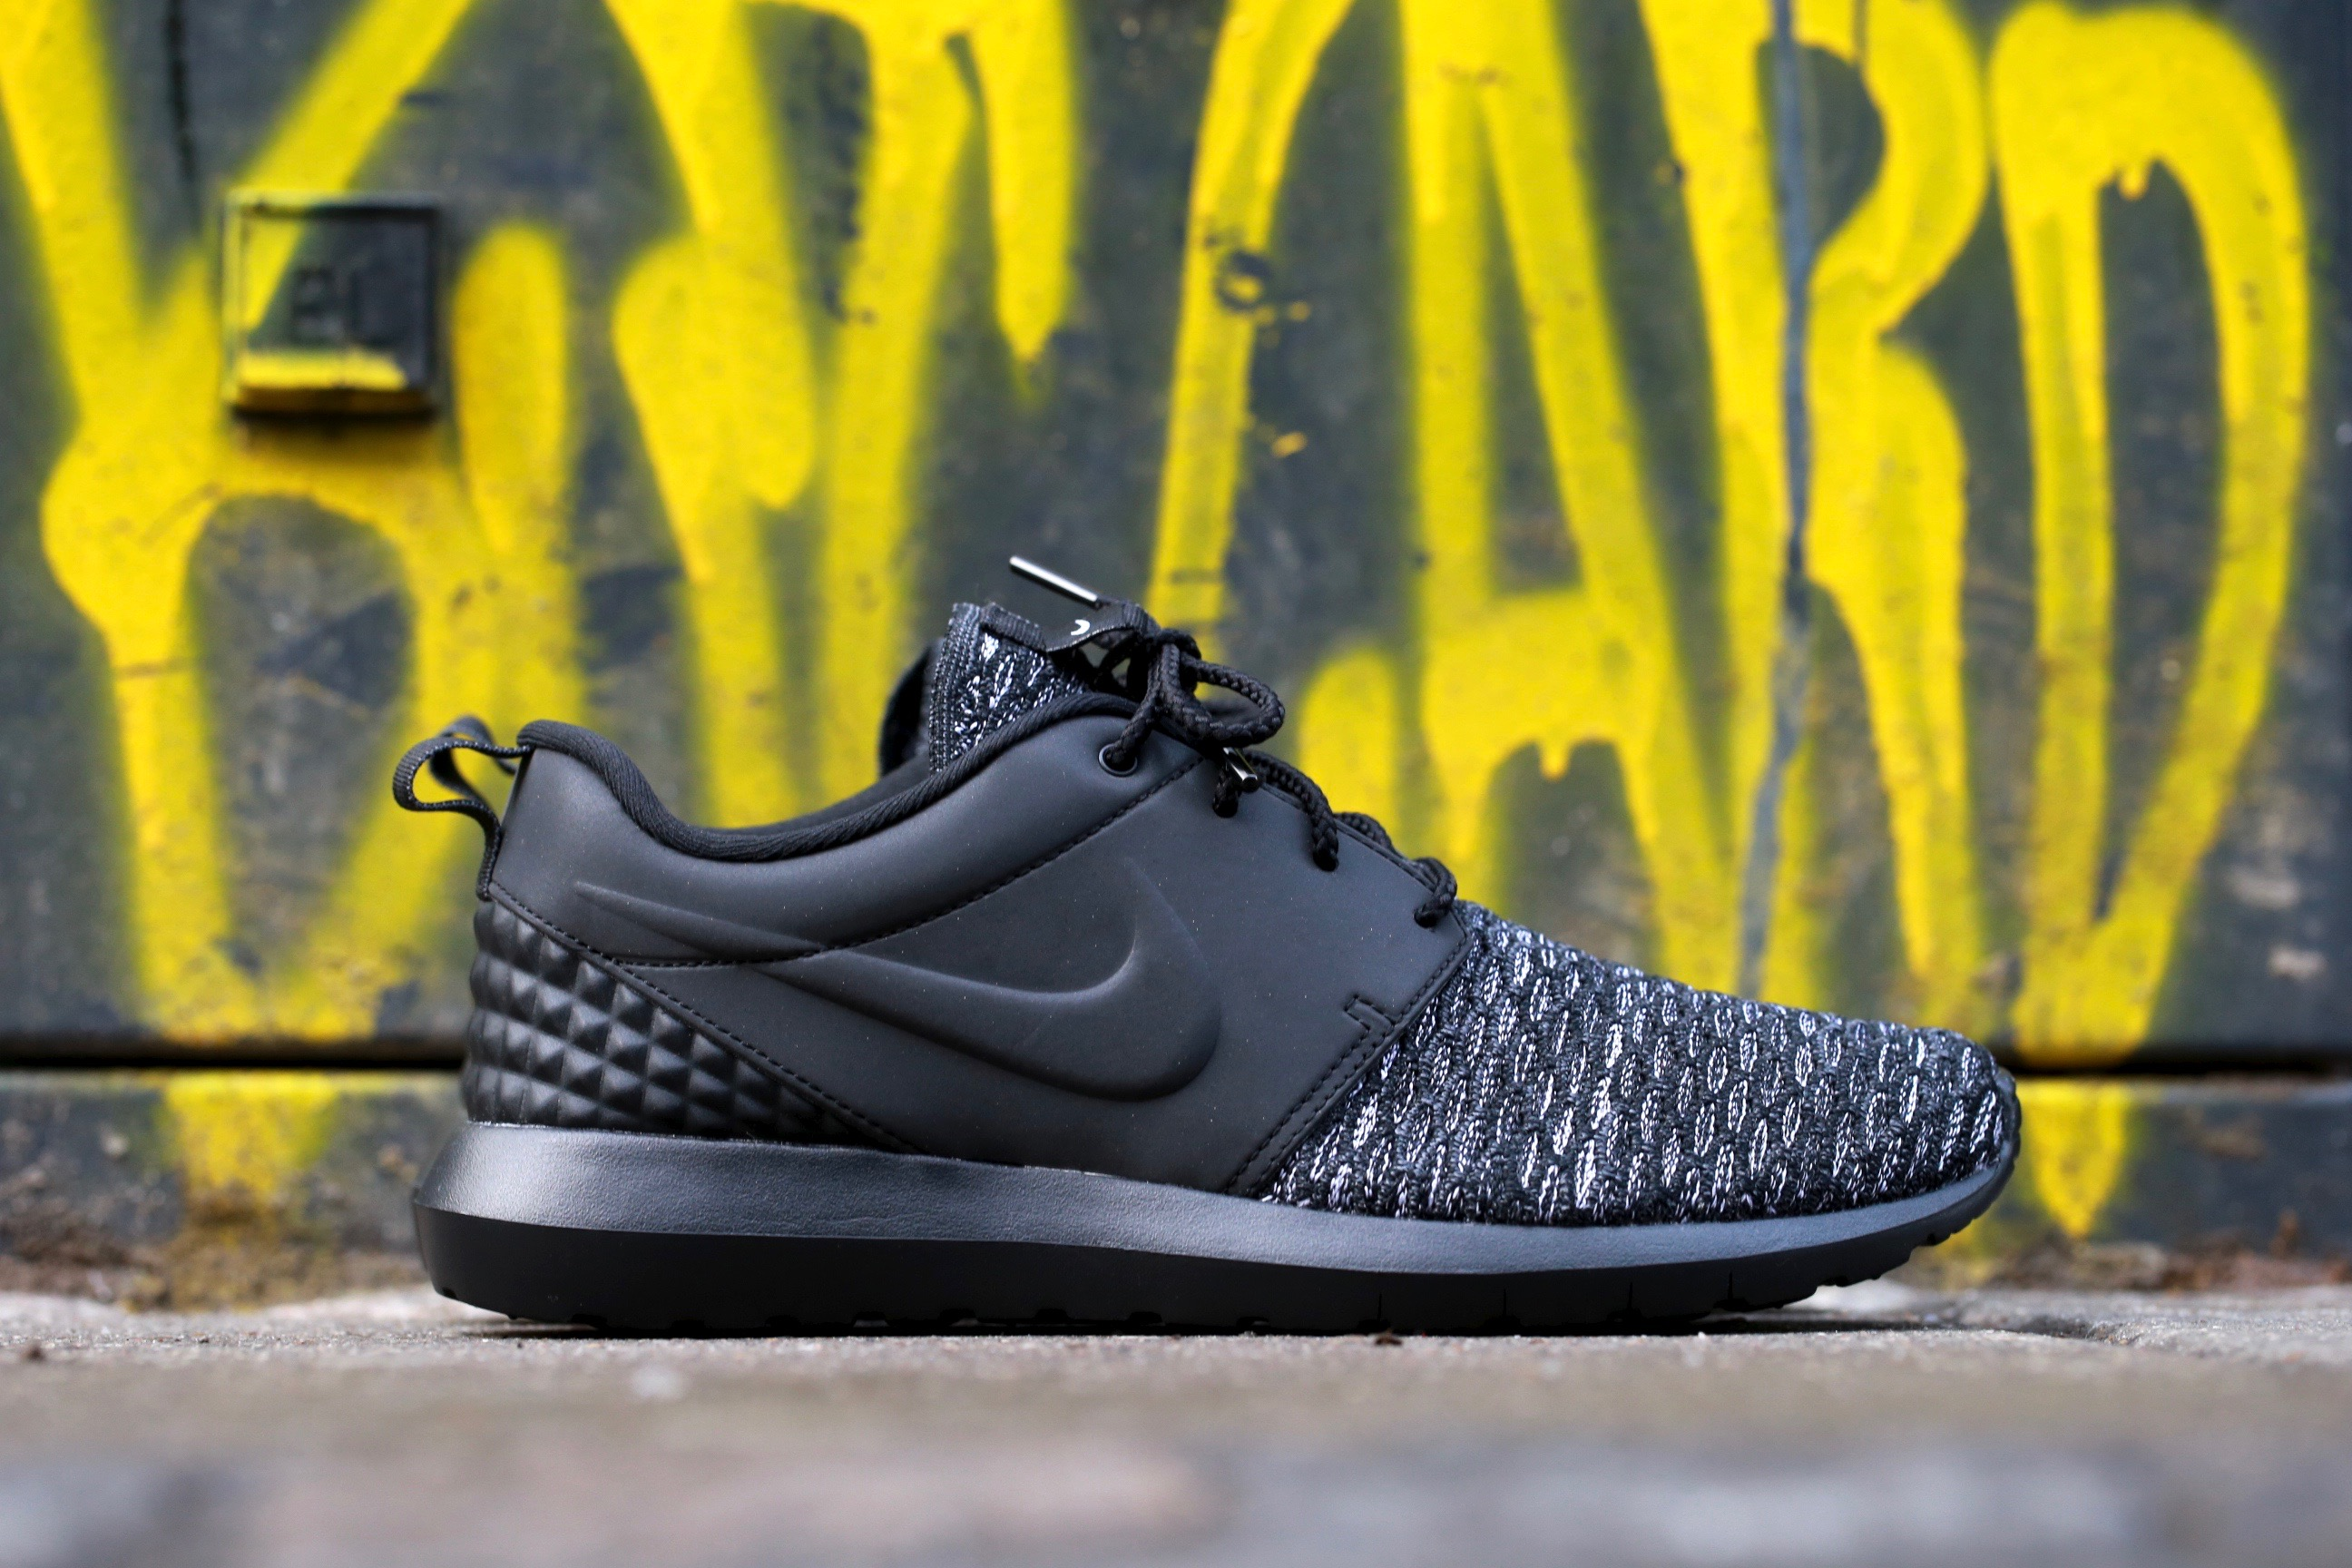 5b076287fa7d Nike Roshe One NM Flyknit Premium – Black   Dark Grey   White – STASP